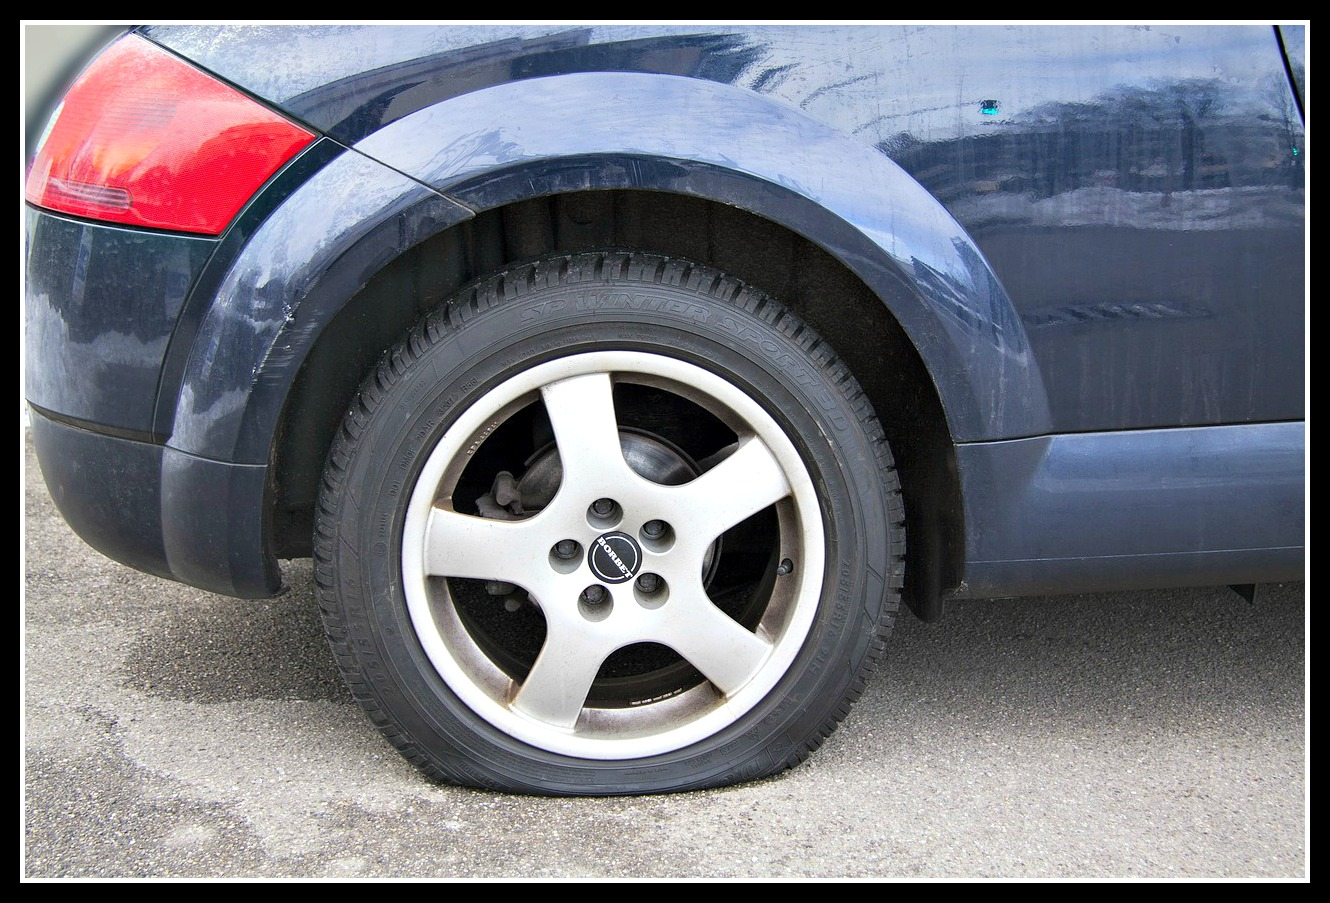 How a flat tyre can mess up the school run